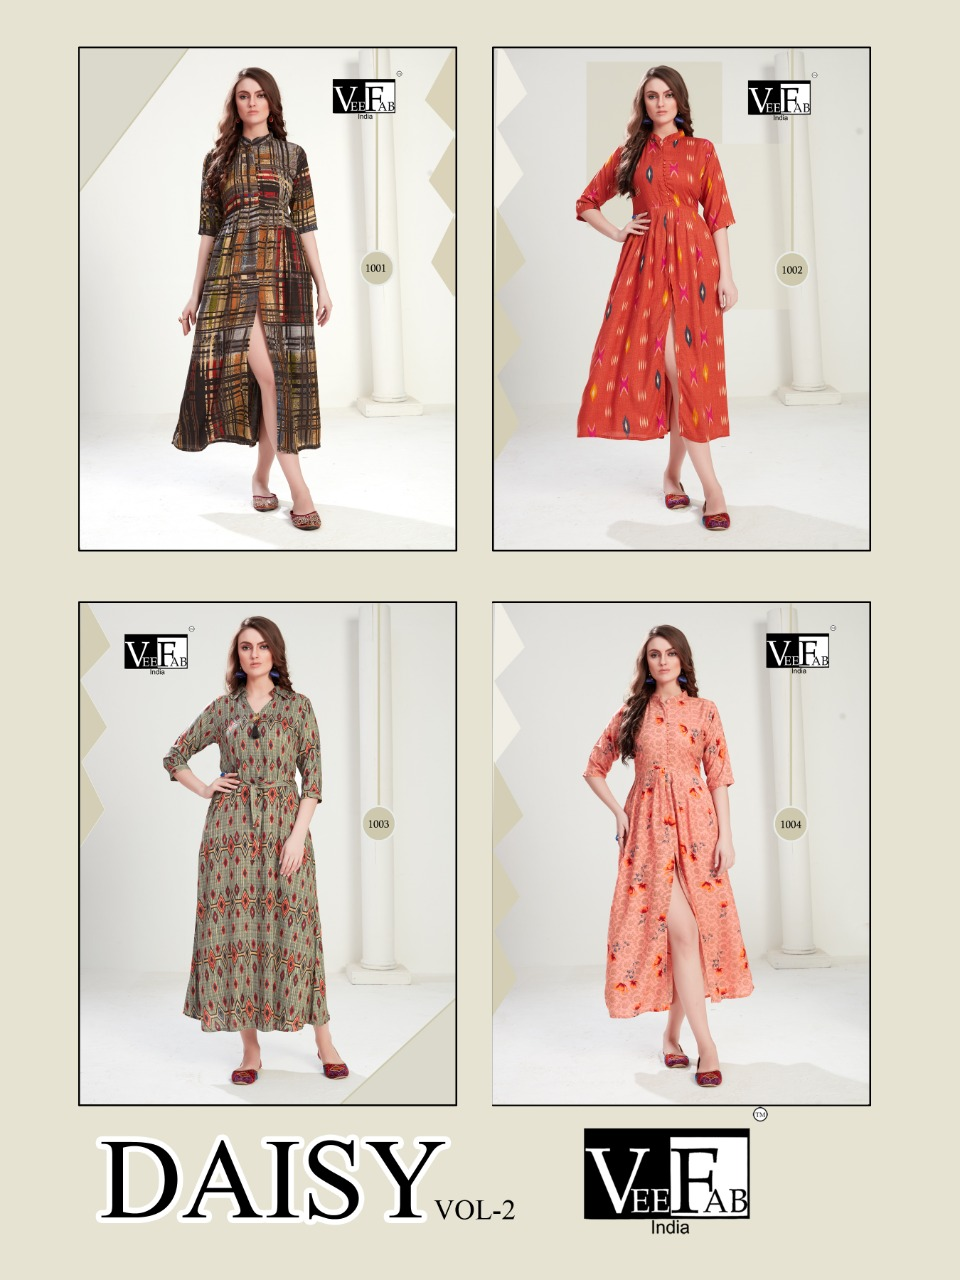 Vee Fab India Daisy Vol 2 collection 2